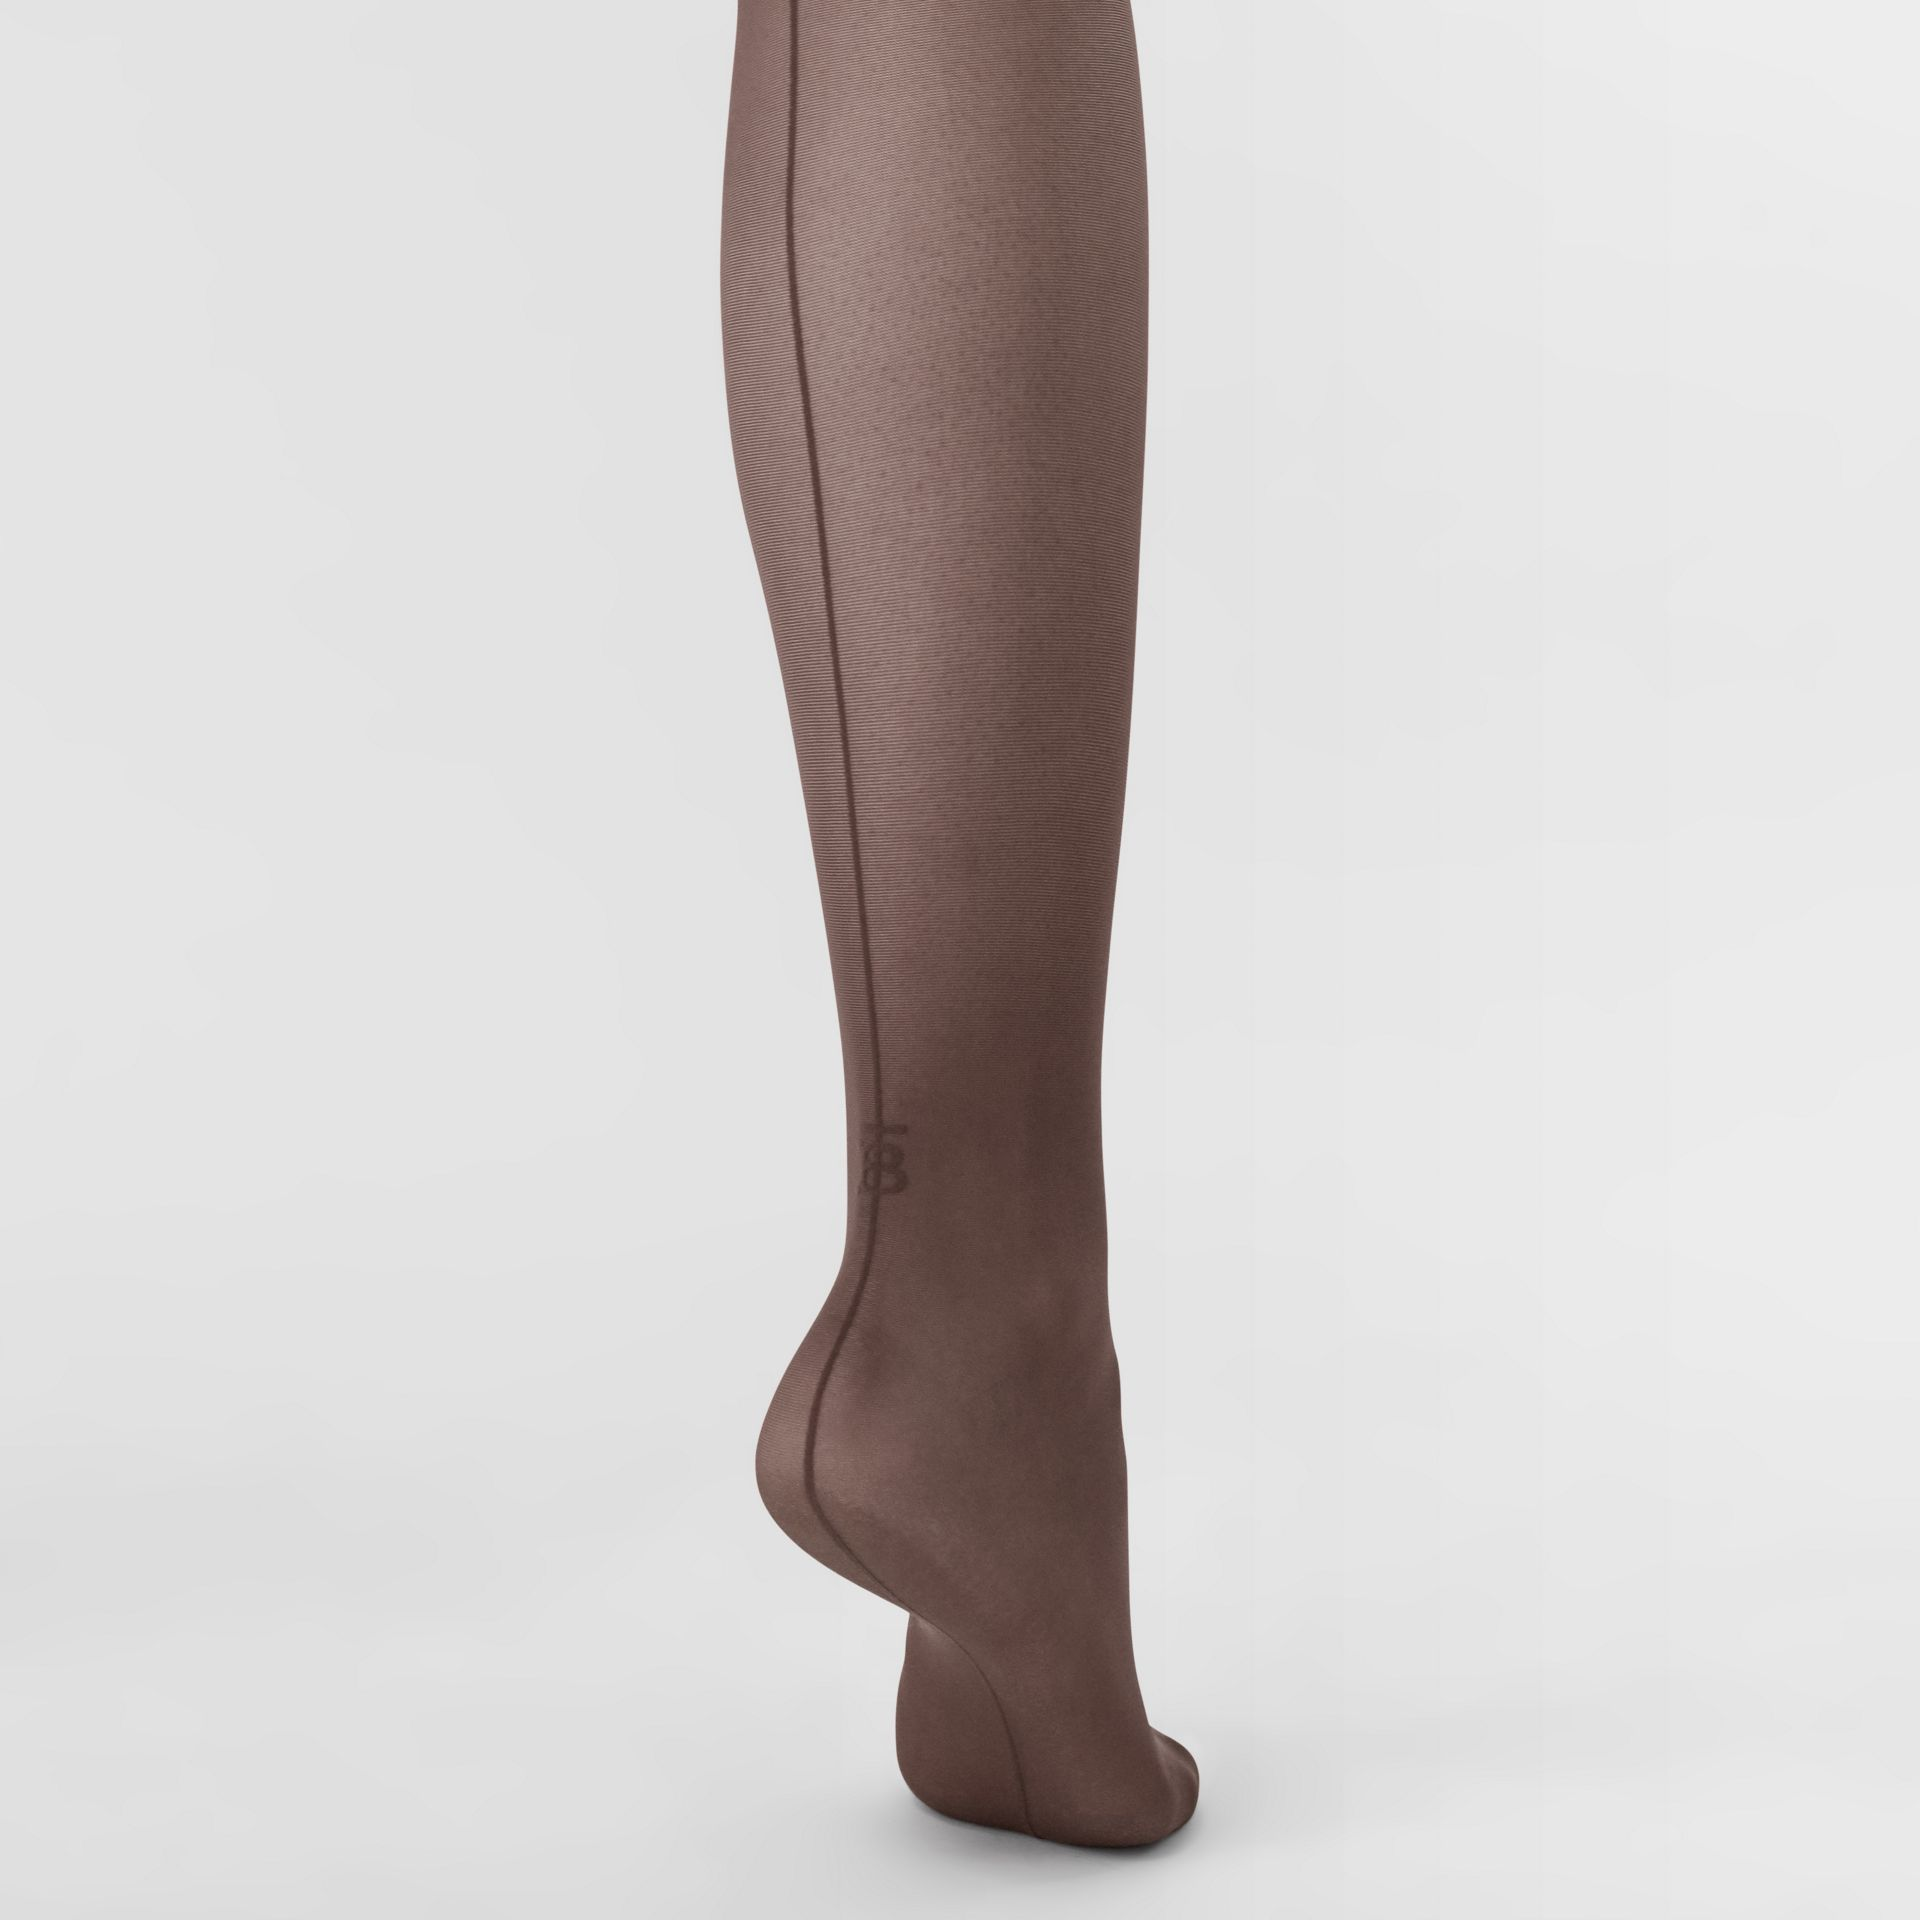 Monogram Motif Seamed Tights in Dark Mocha - Women | Burberry Australia - gallery image 2